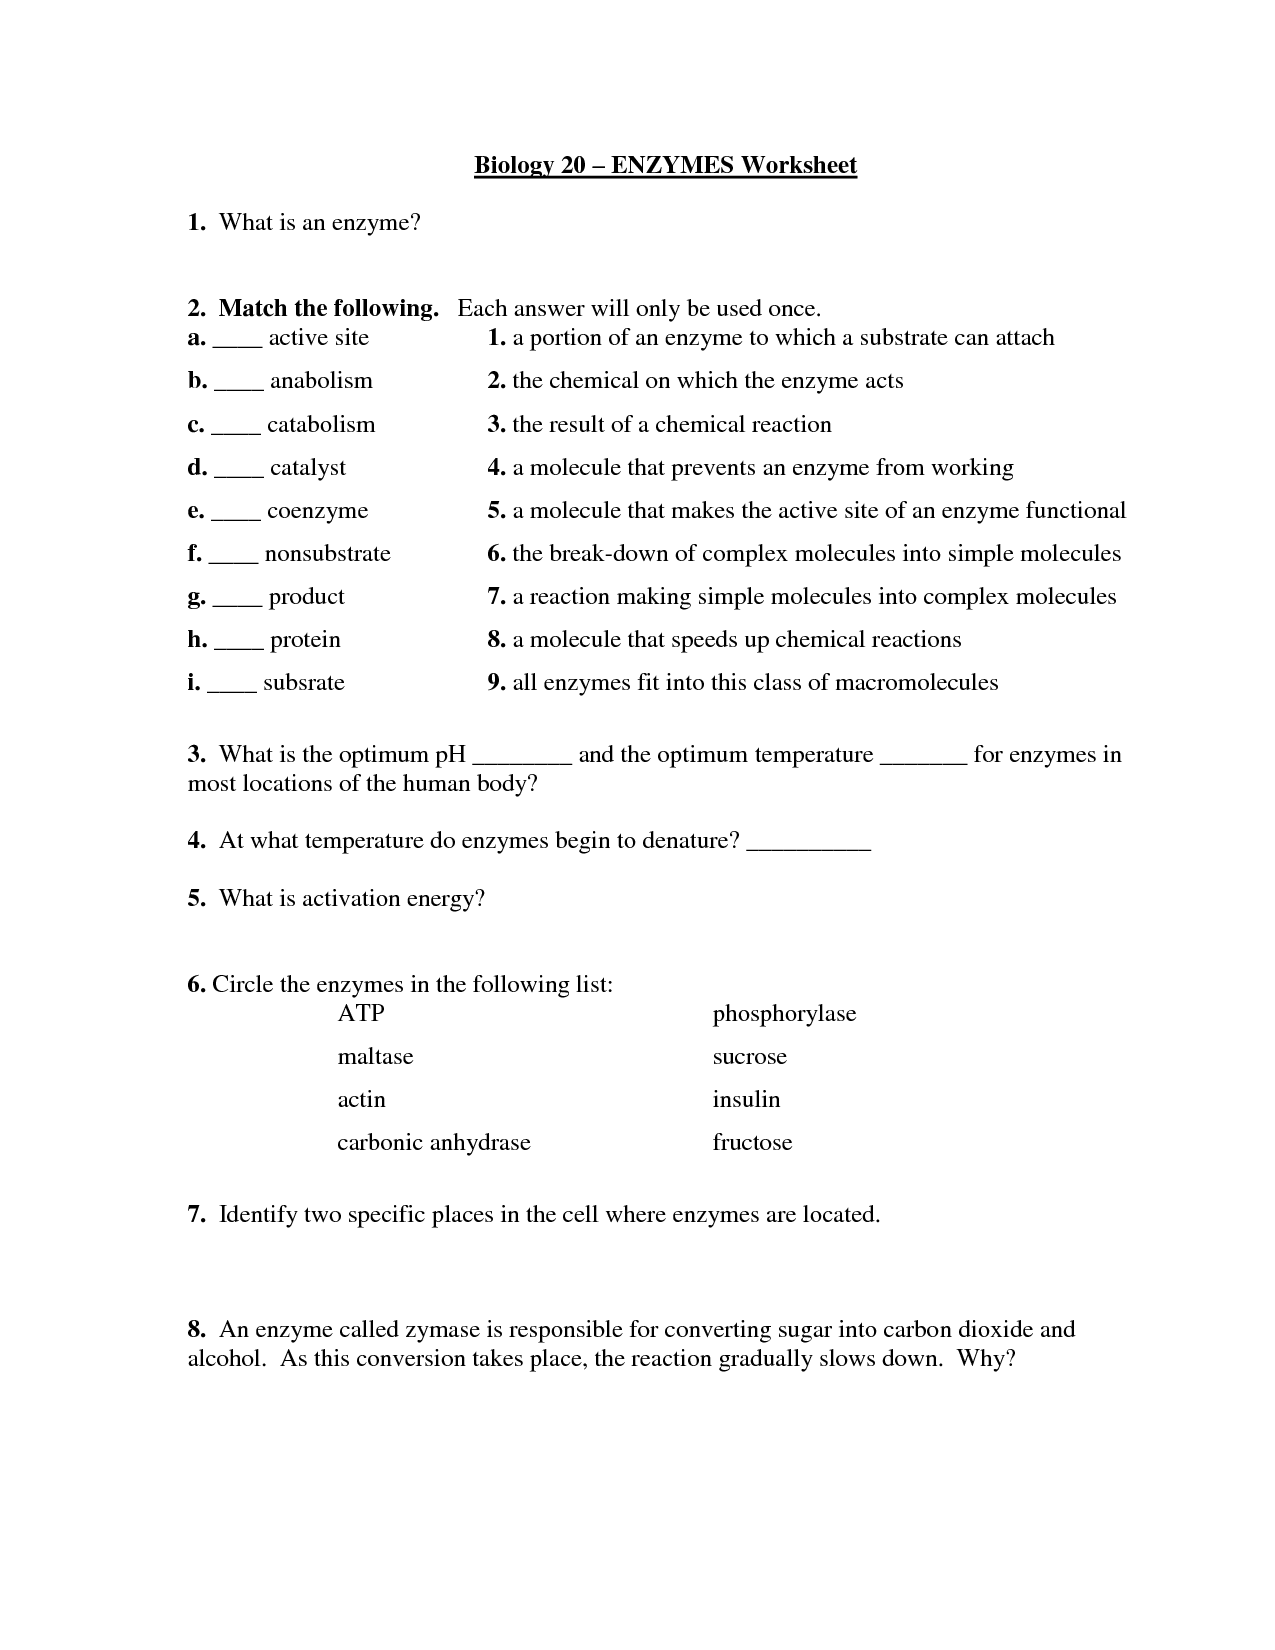 Enzyme Reaction Rates Worksheet Answer Key Kidz Activities